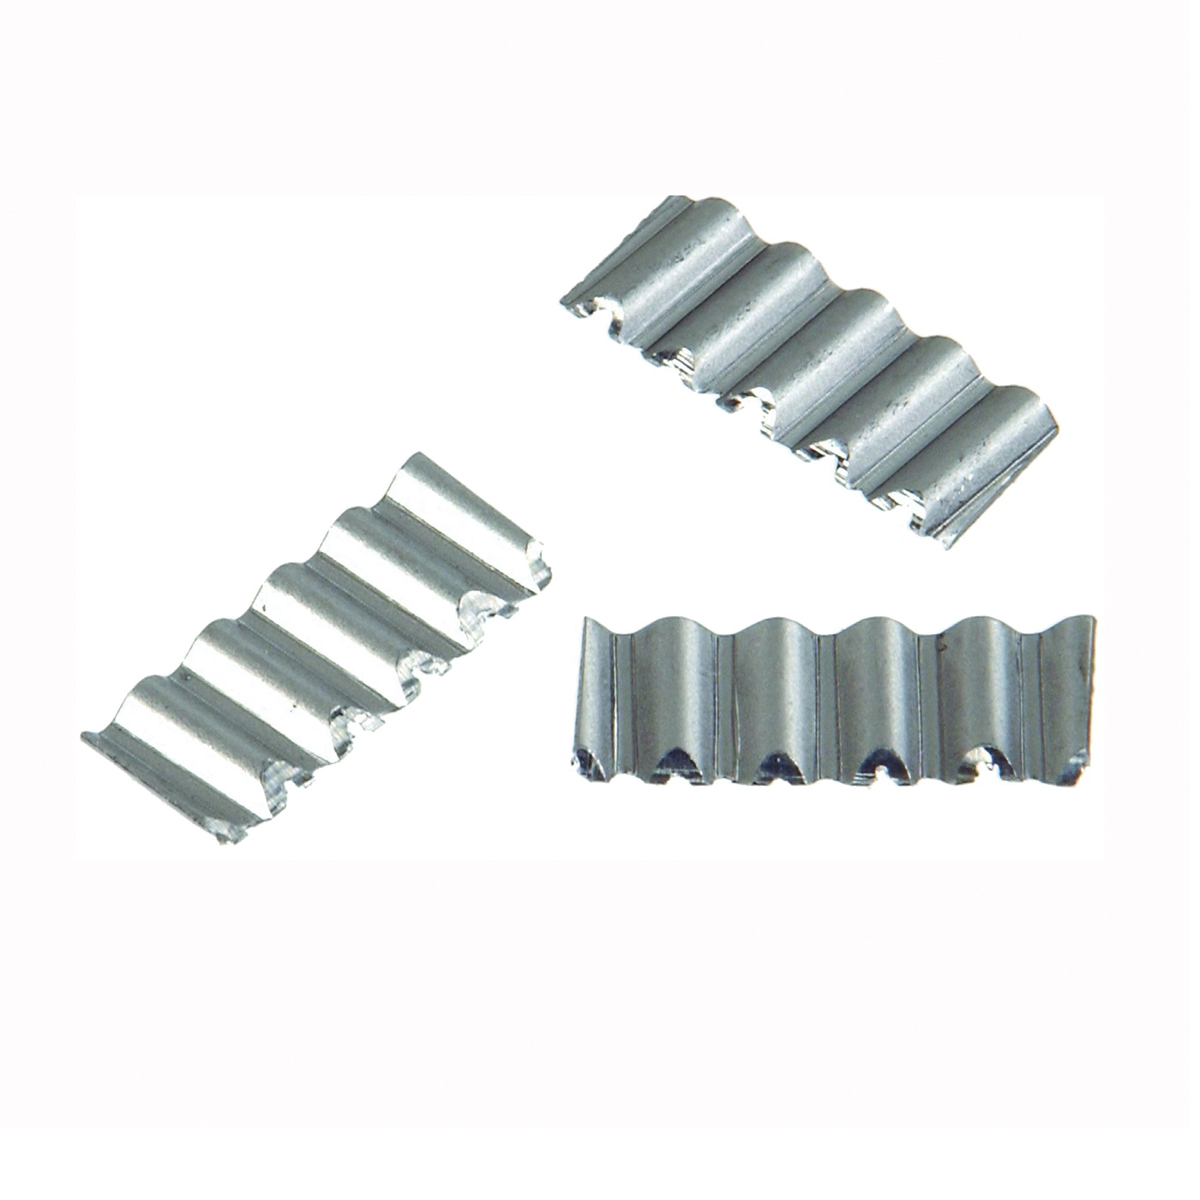 Picture of HILLMAN 122708 Joint Fastener, Steel